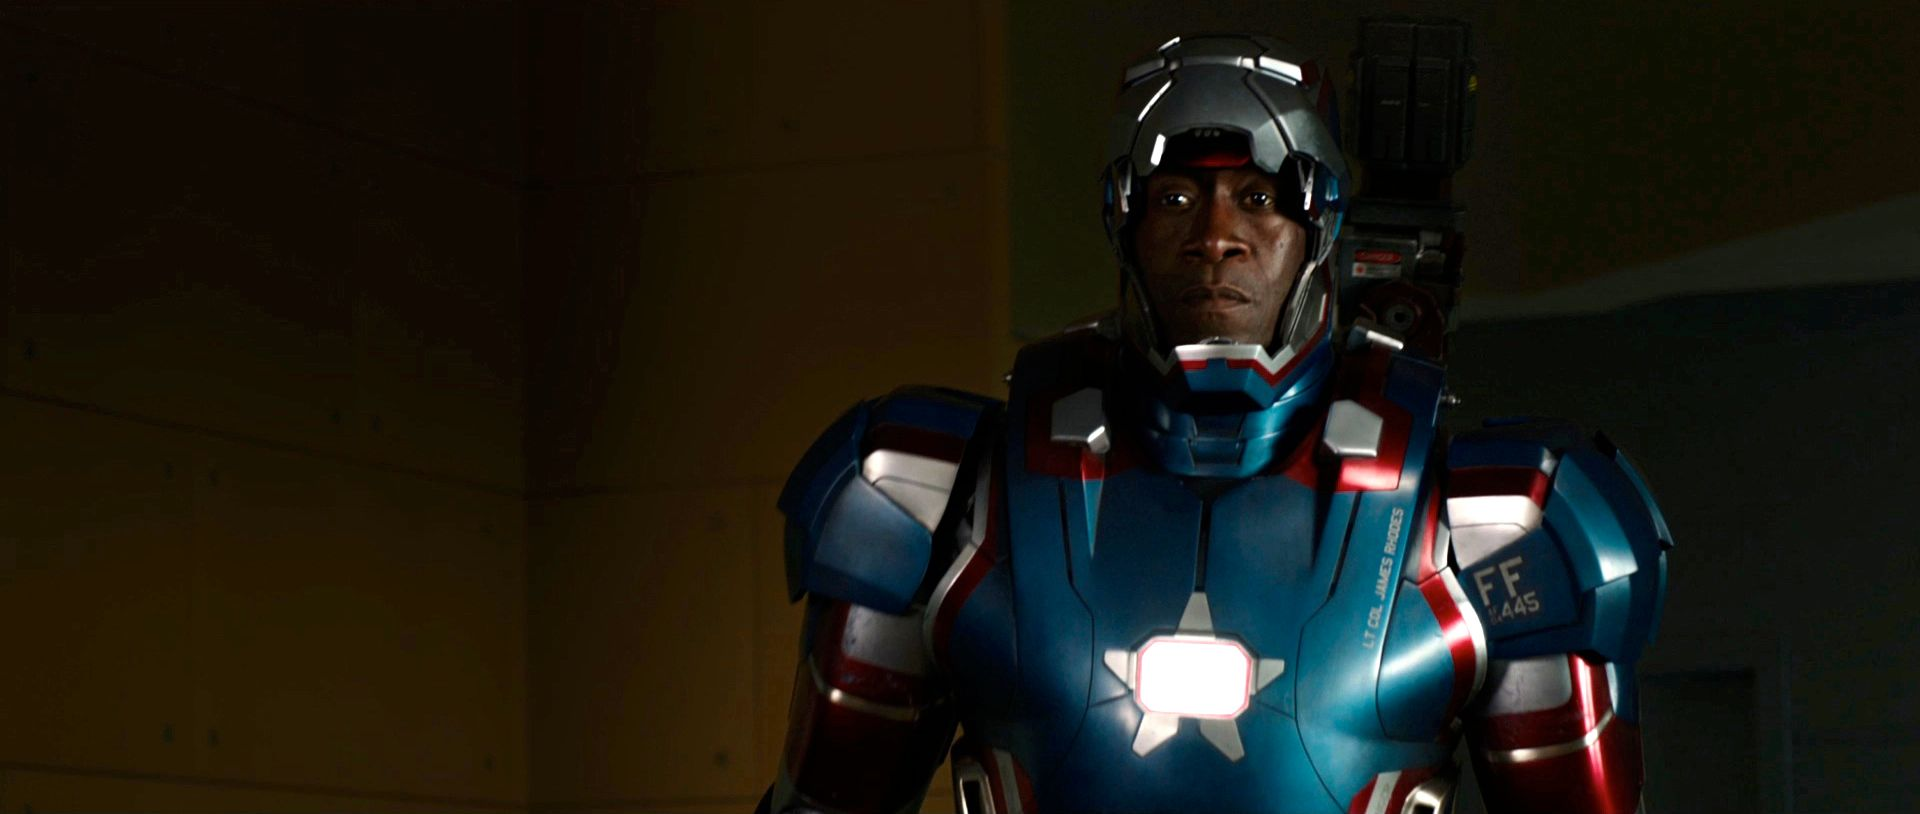 New IRON MAN 3 Images Show Don Cheadle in Iron Patriot War Machine    Don Cheadle Iron Man 3